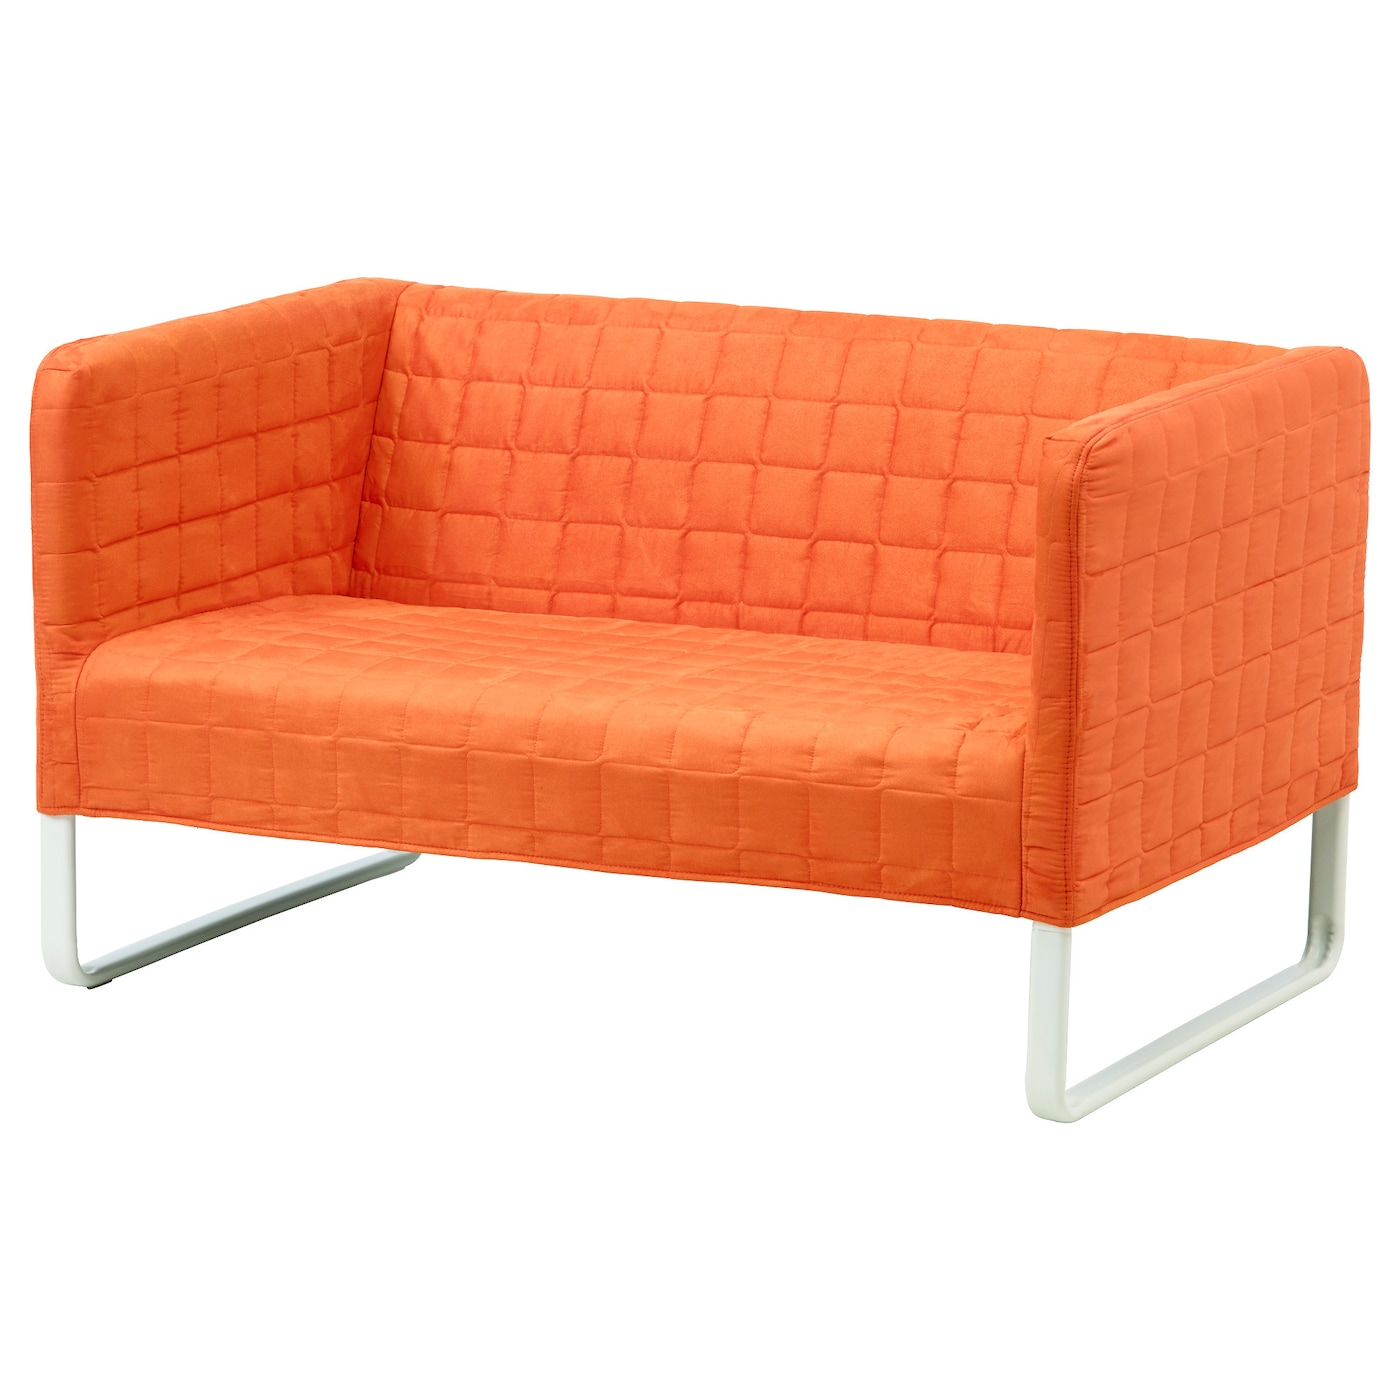 Knopparp 2 seat sofa orange ikea - Modelos de sofas ...